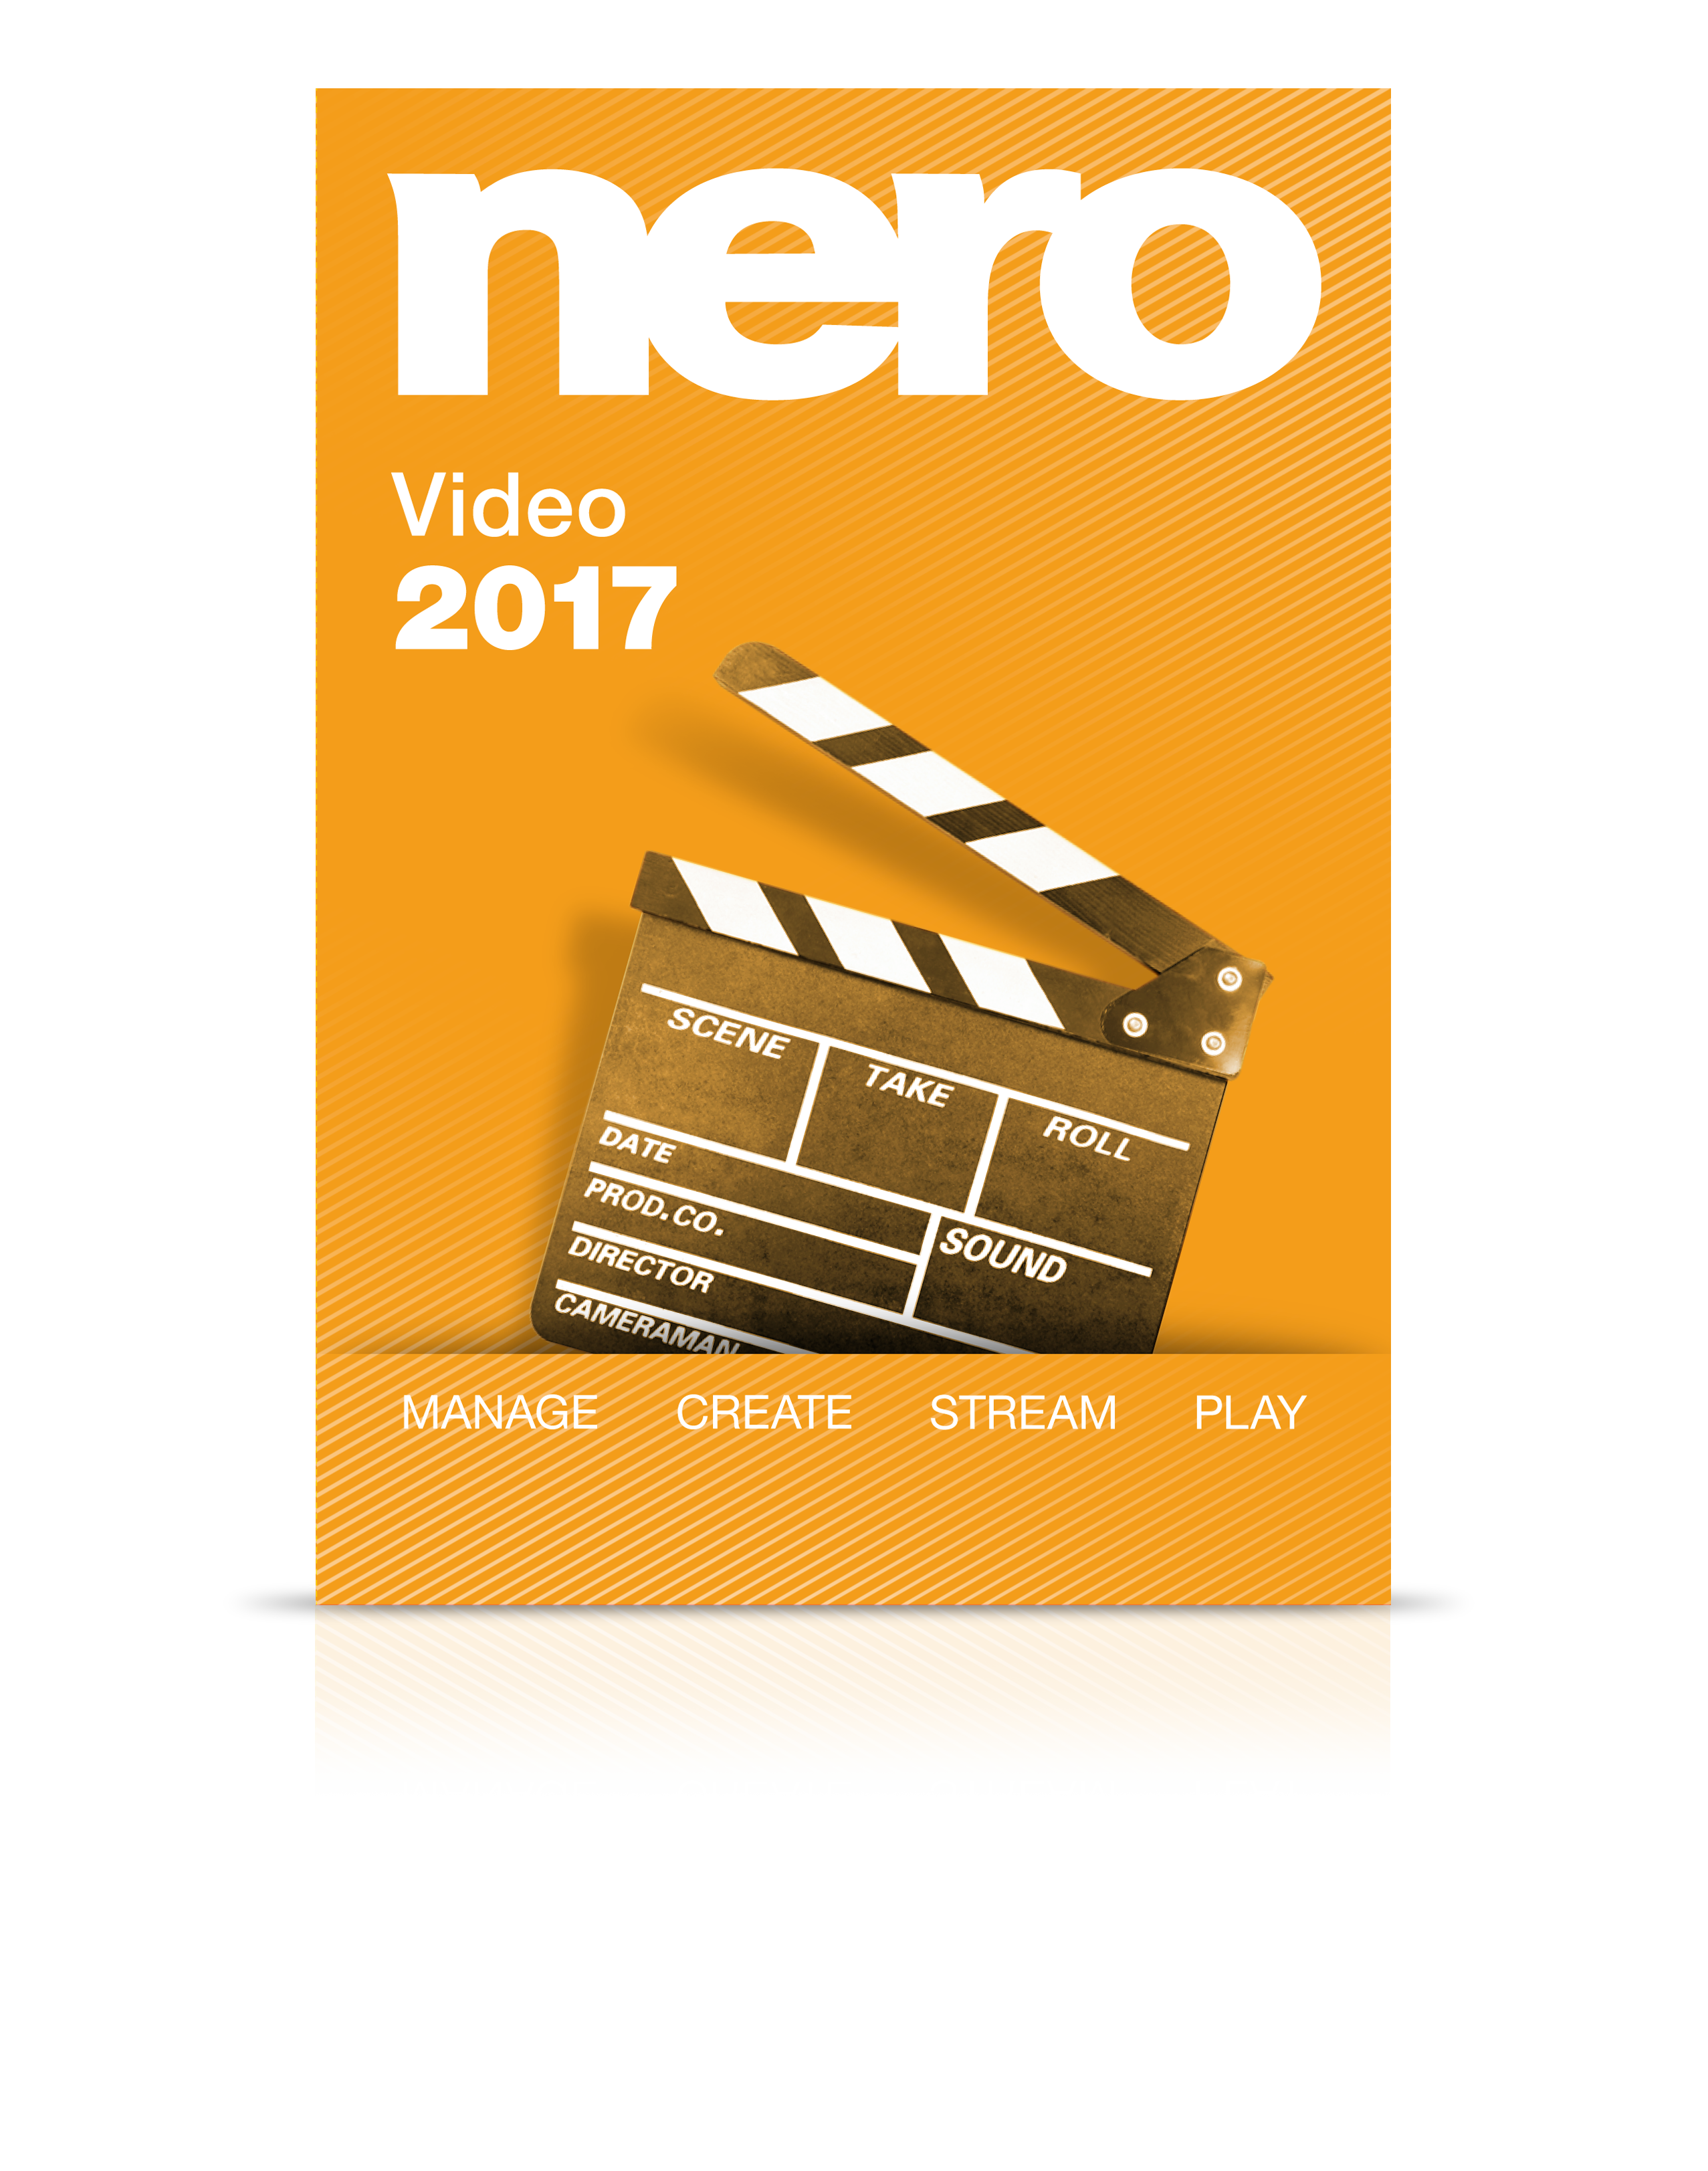 Nero 2017 Video [Download]